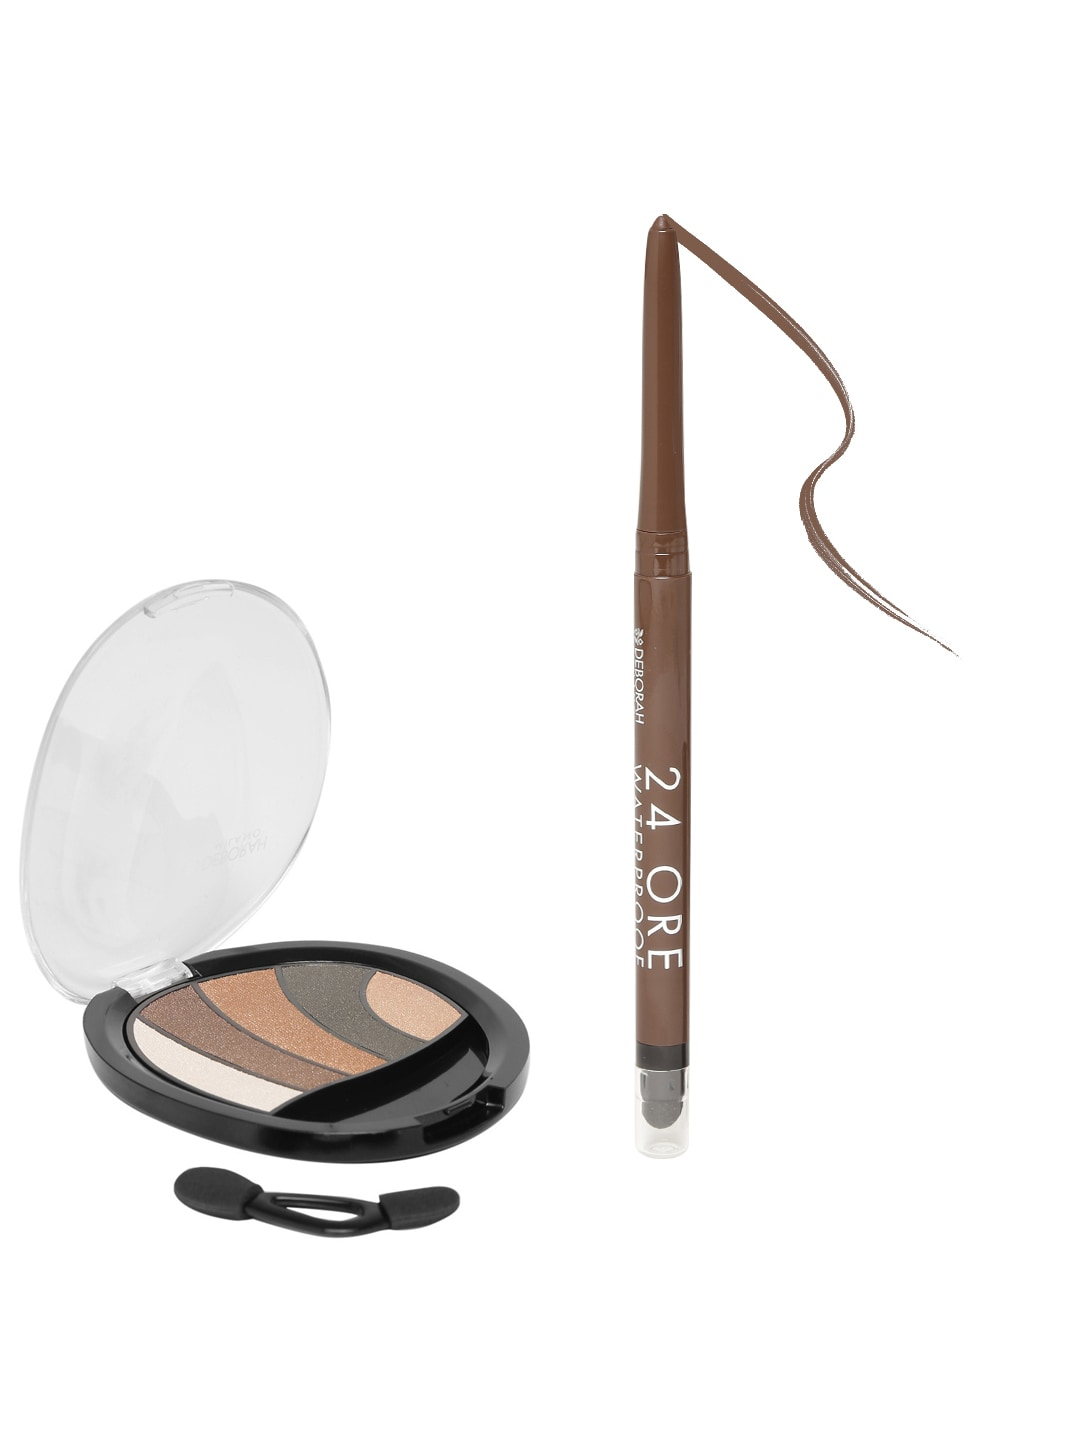 Deborah Milano 24 ORE Brown Waterproof Eye Pencil & Eyeshadow Palette 01 image